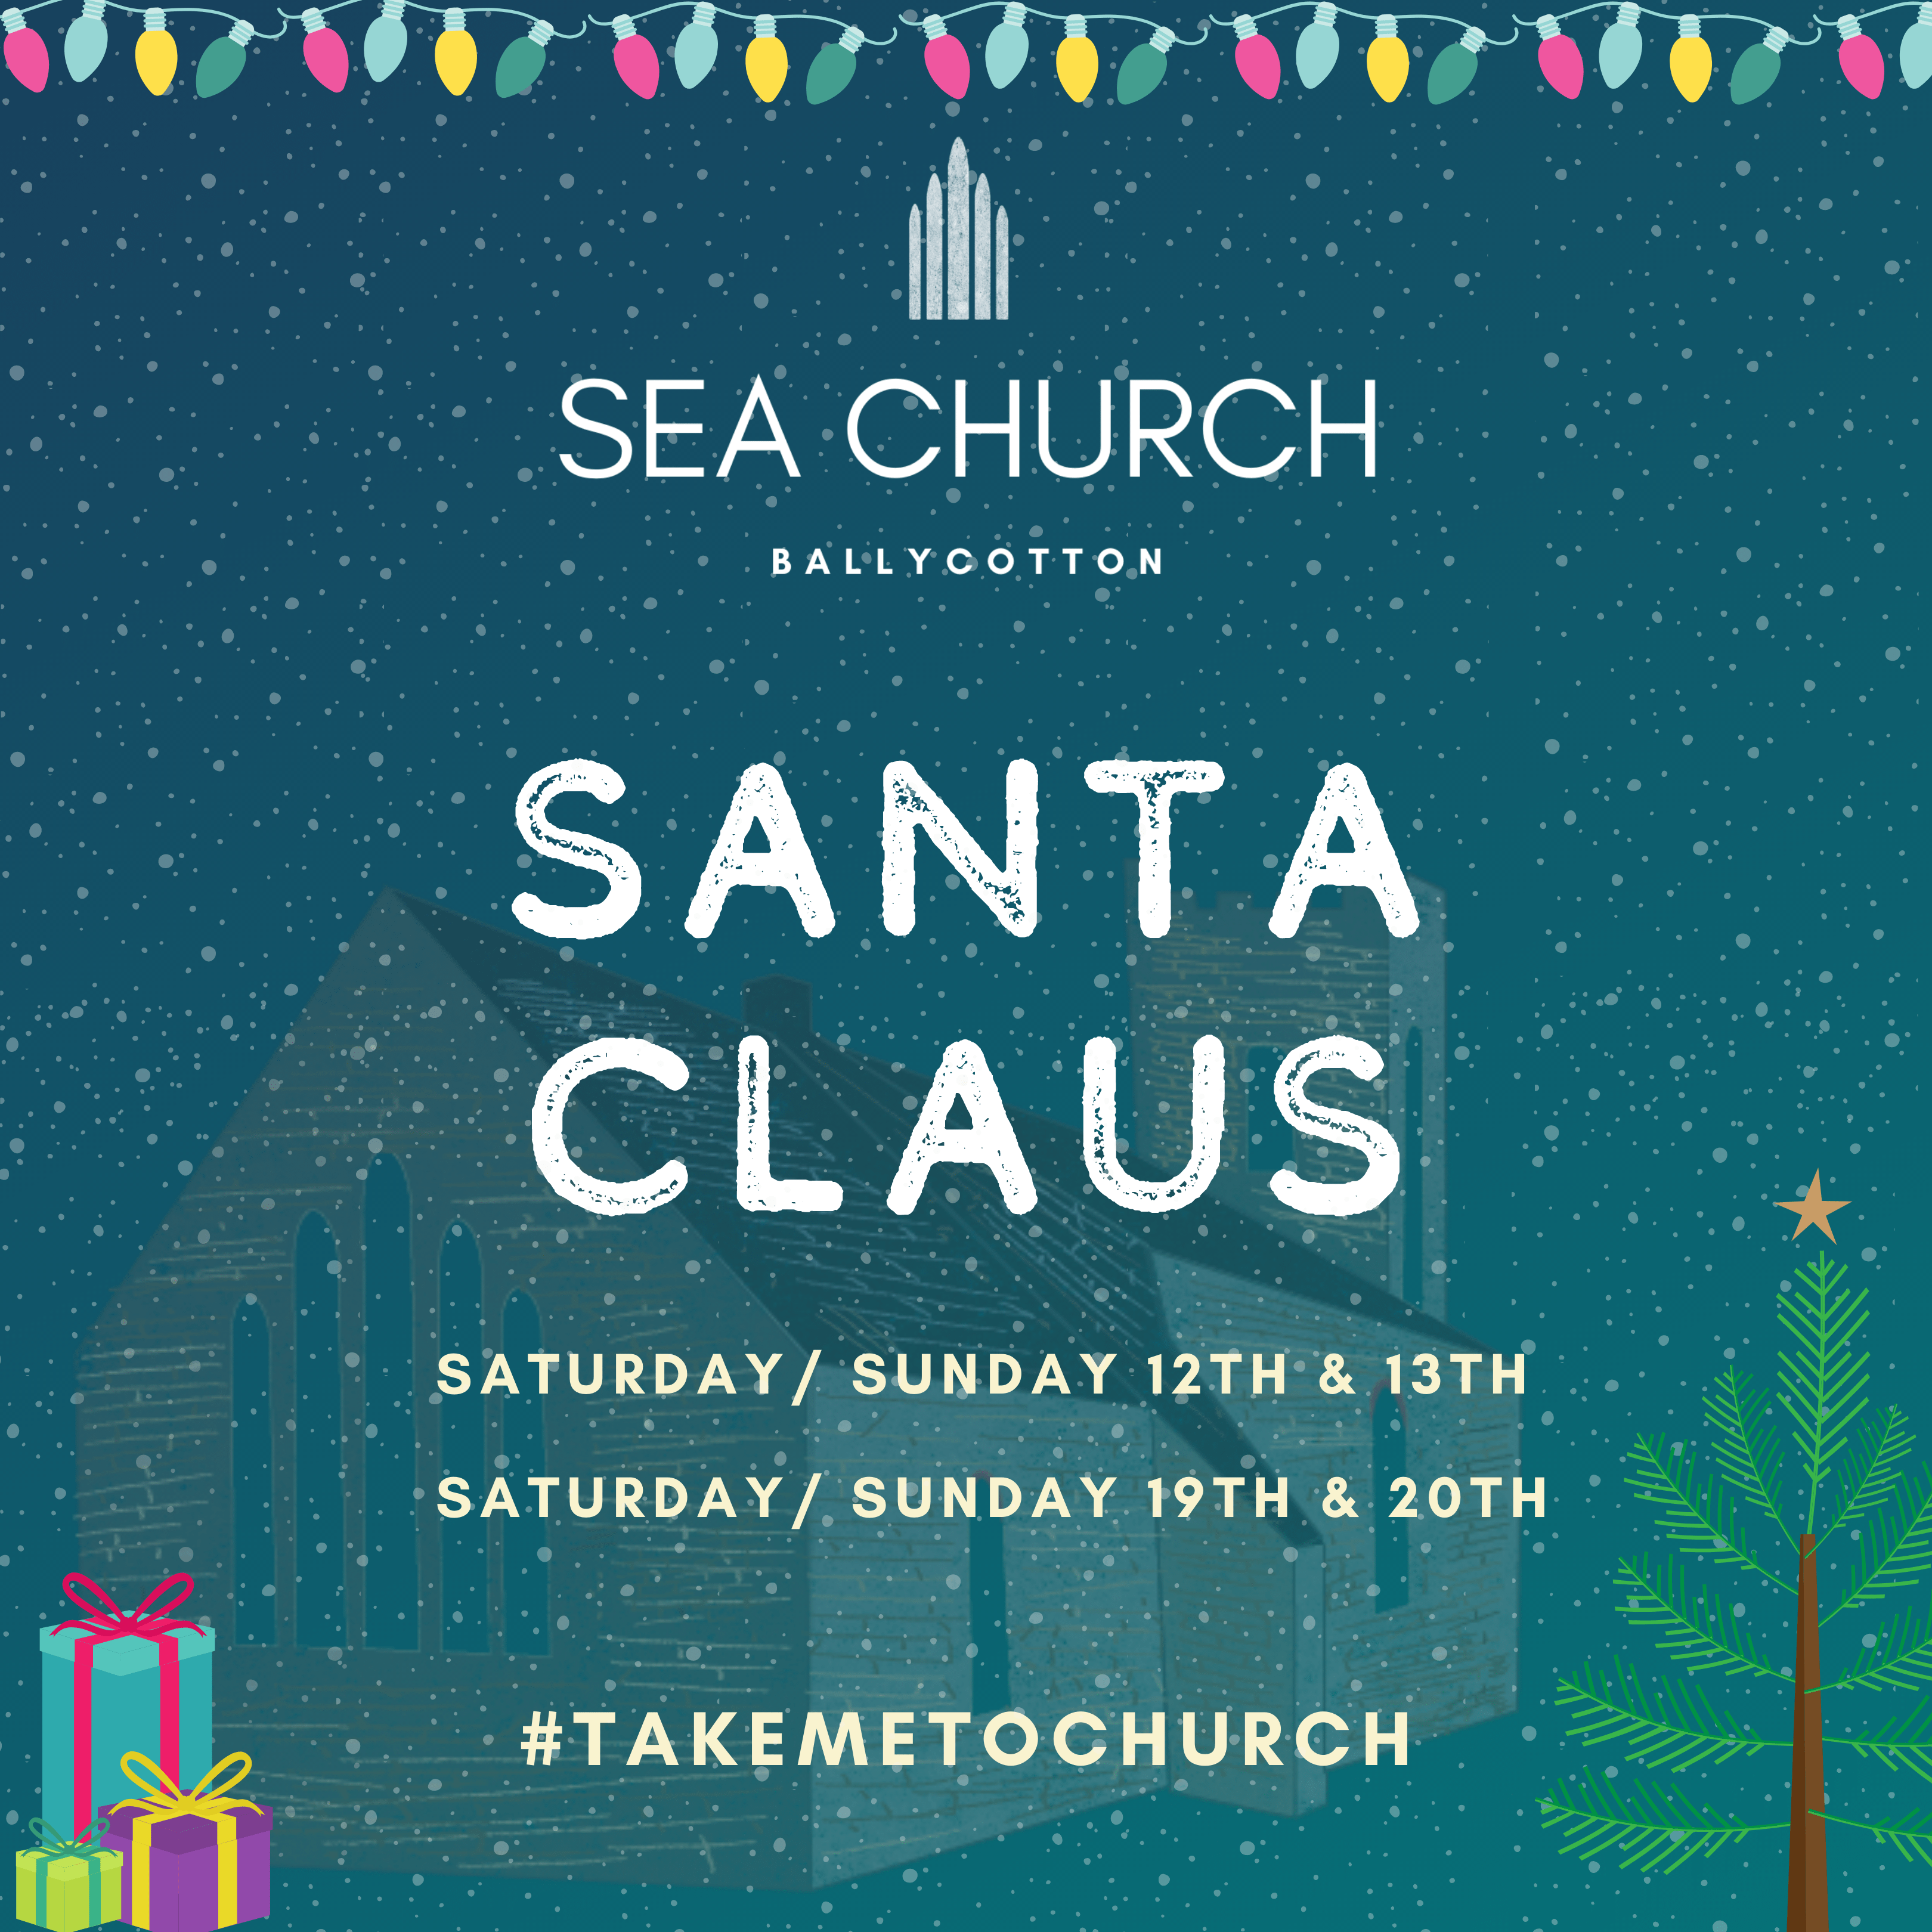 Visit Santa in our Winter Wonderland at Sea Church Ballycotton